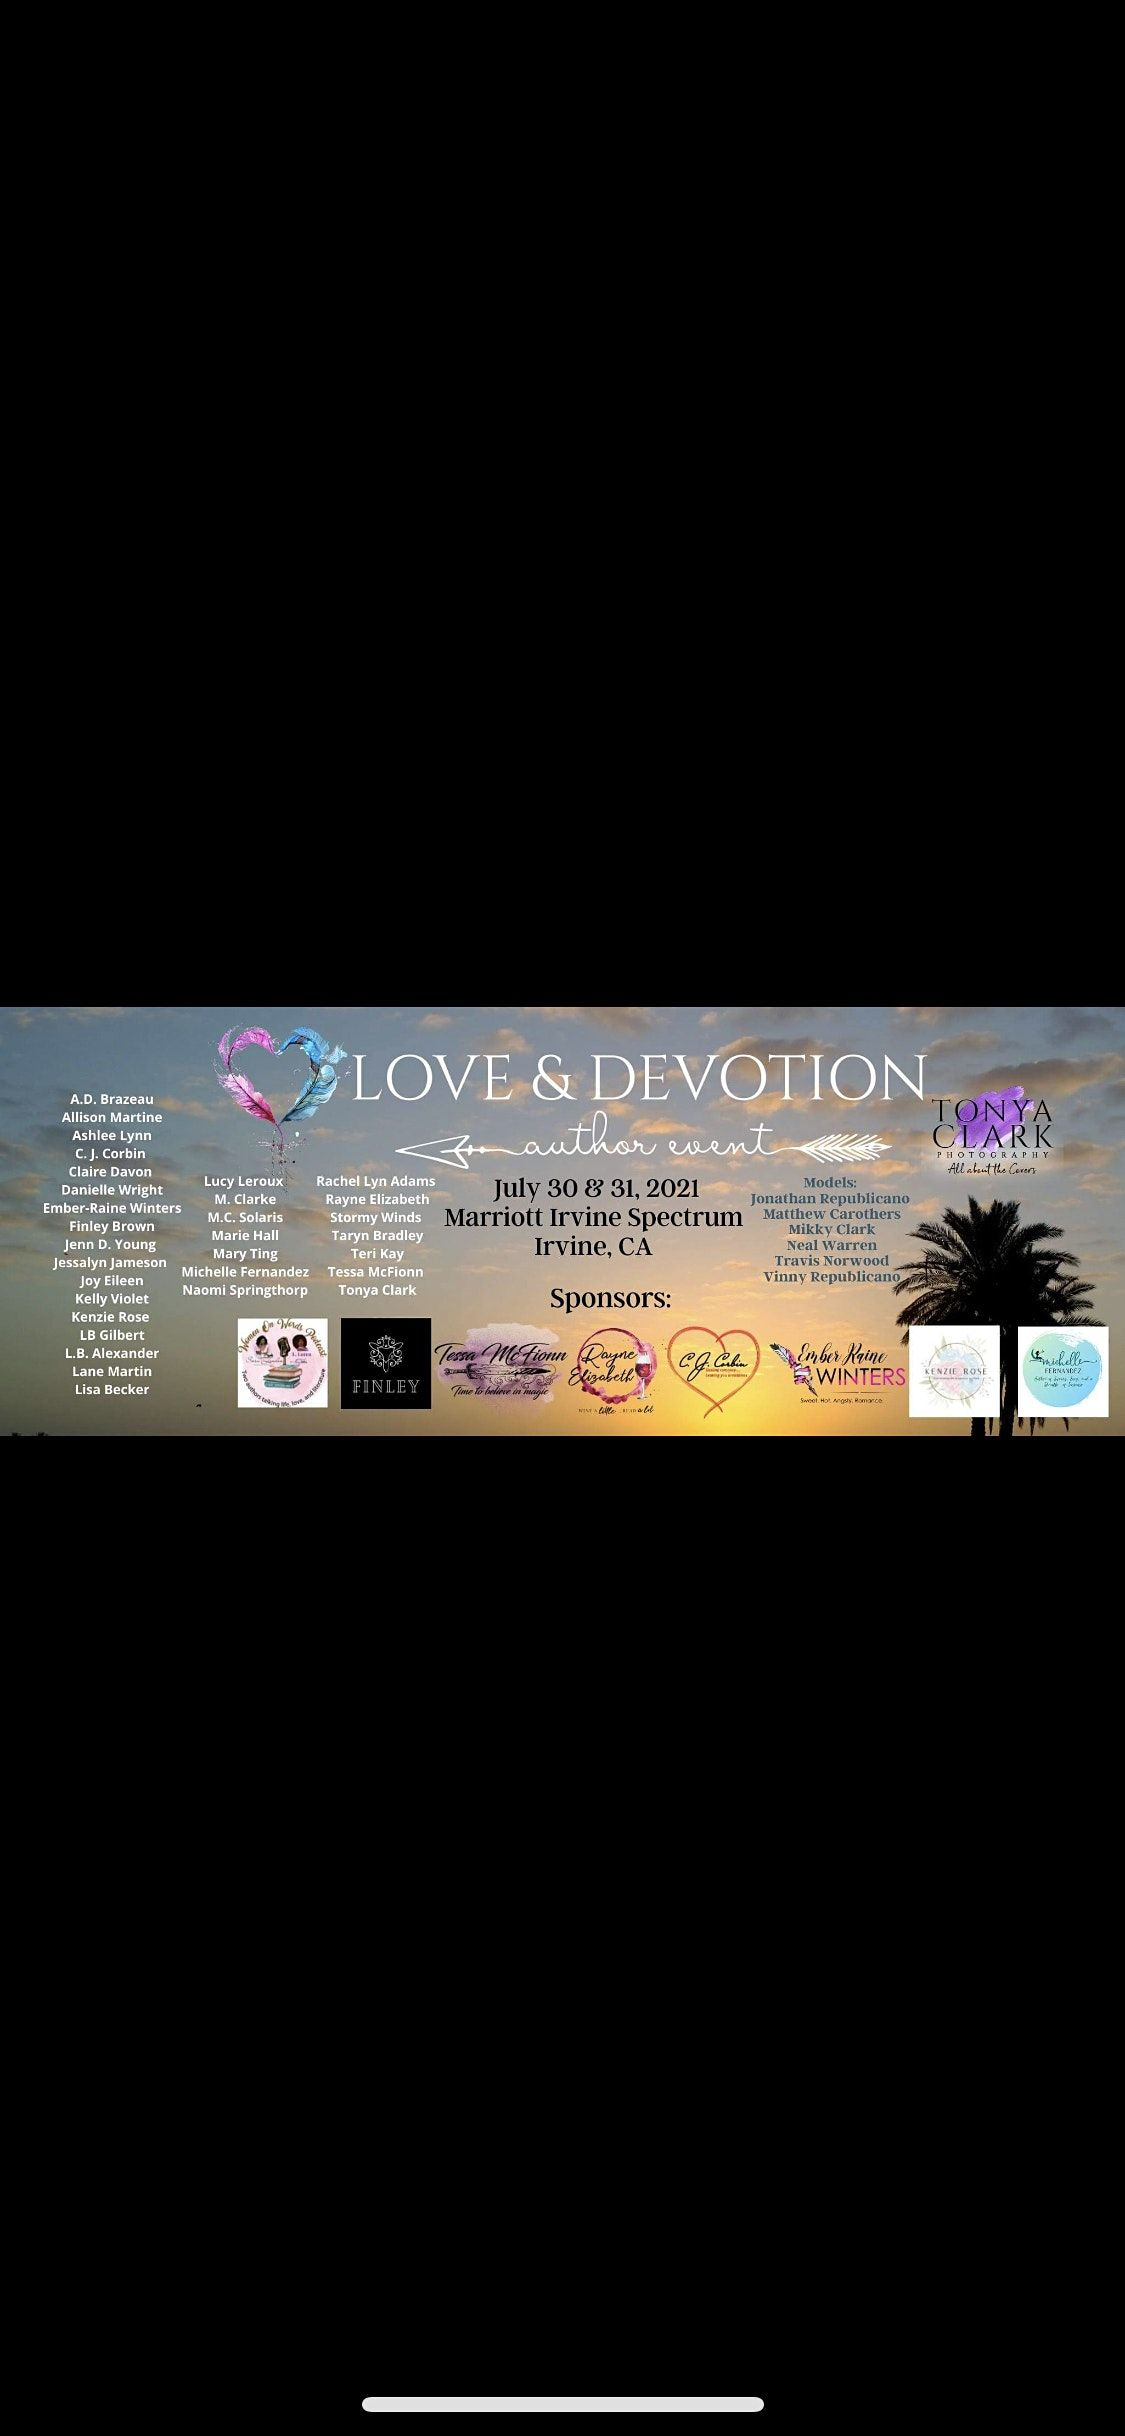 Love & Devotion Author Event  OC 2021- An All Romance Book Event!, 30 July | Event in Irvine | AllEvents.in